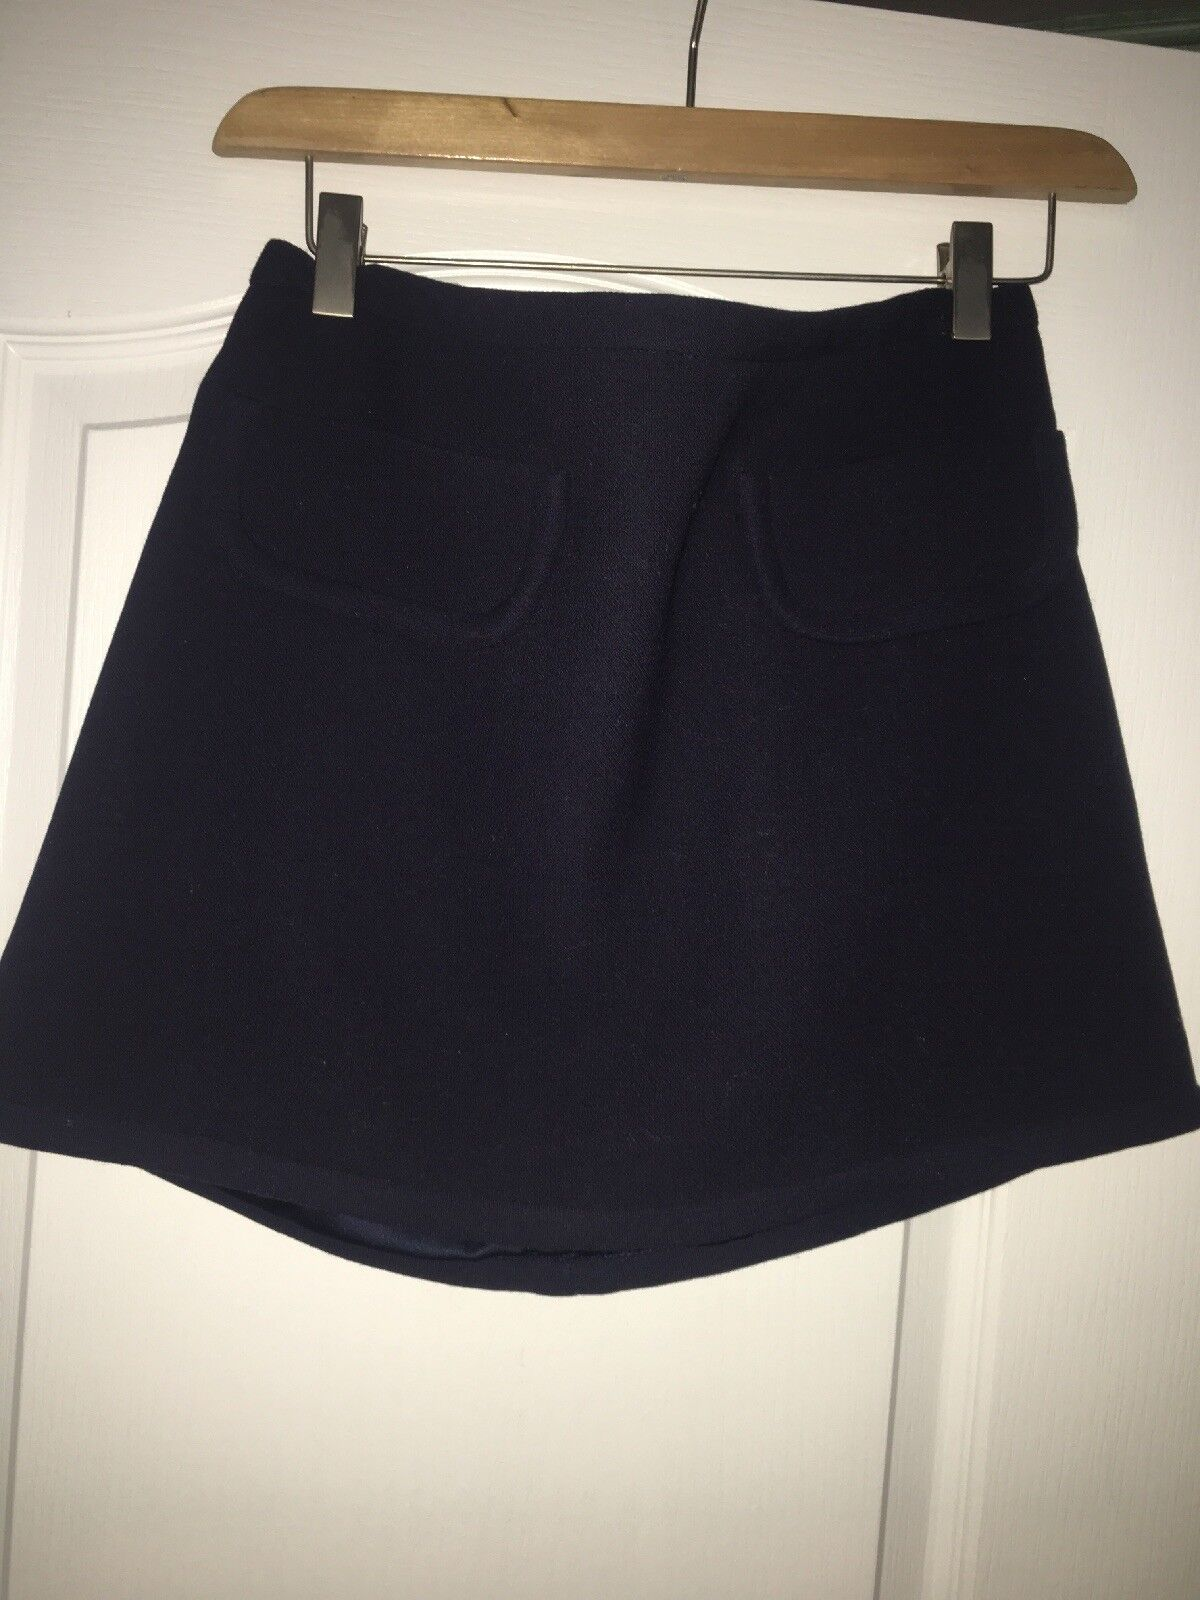 NEW WITH TAGS  595 Size 6 Marc Jacobs Navy Mini Skirt 100% WOOL